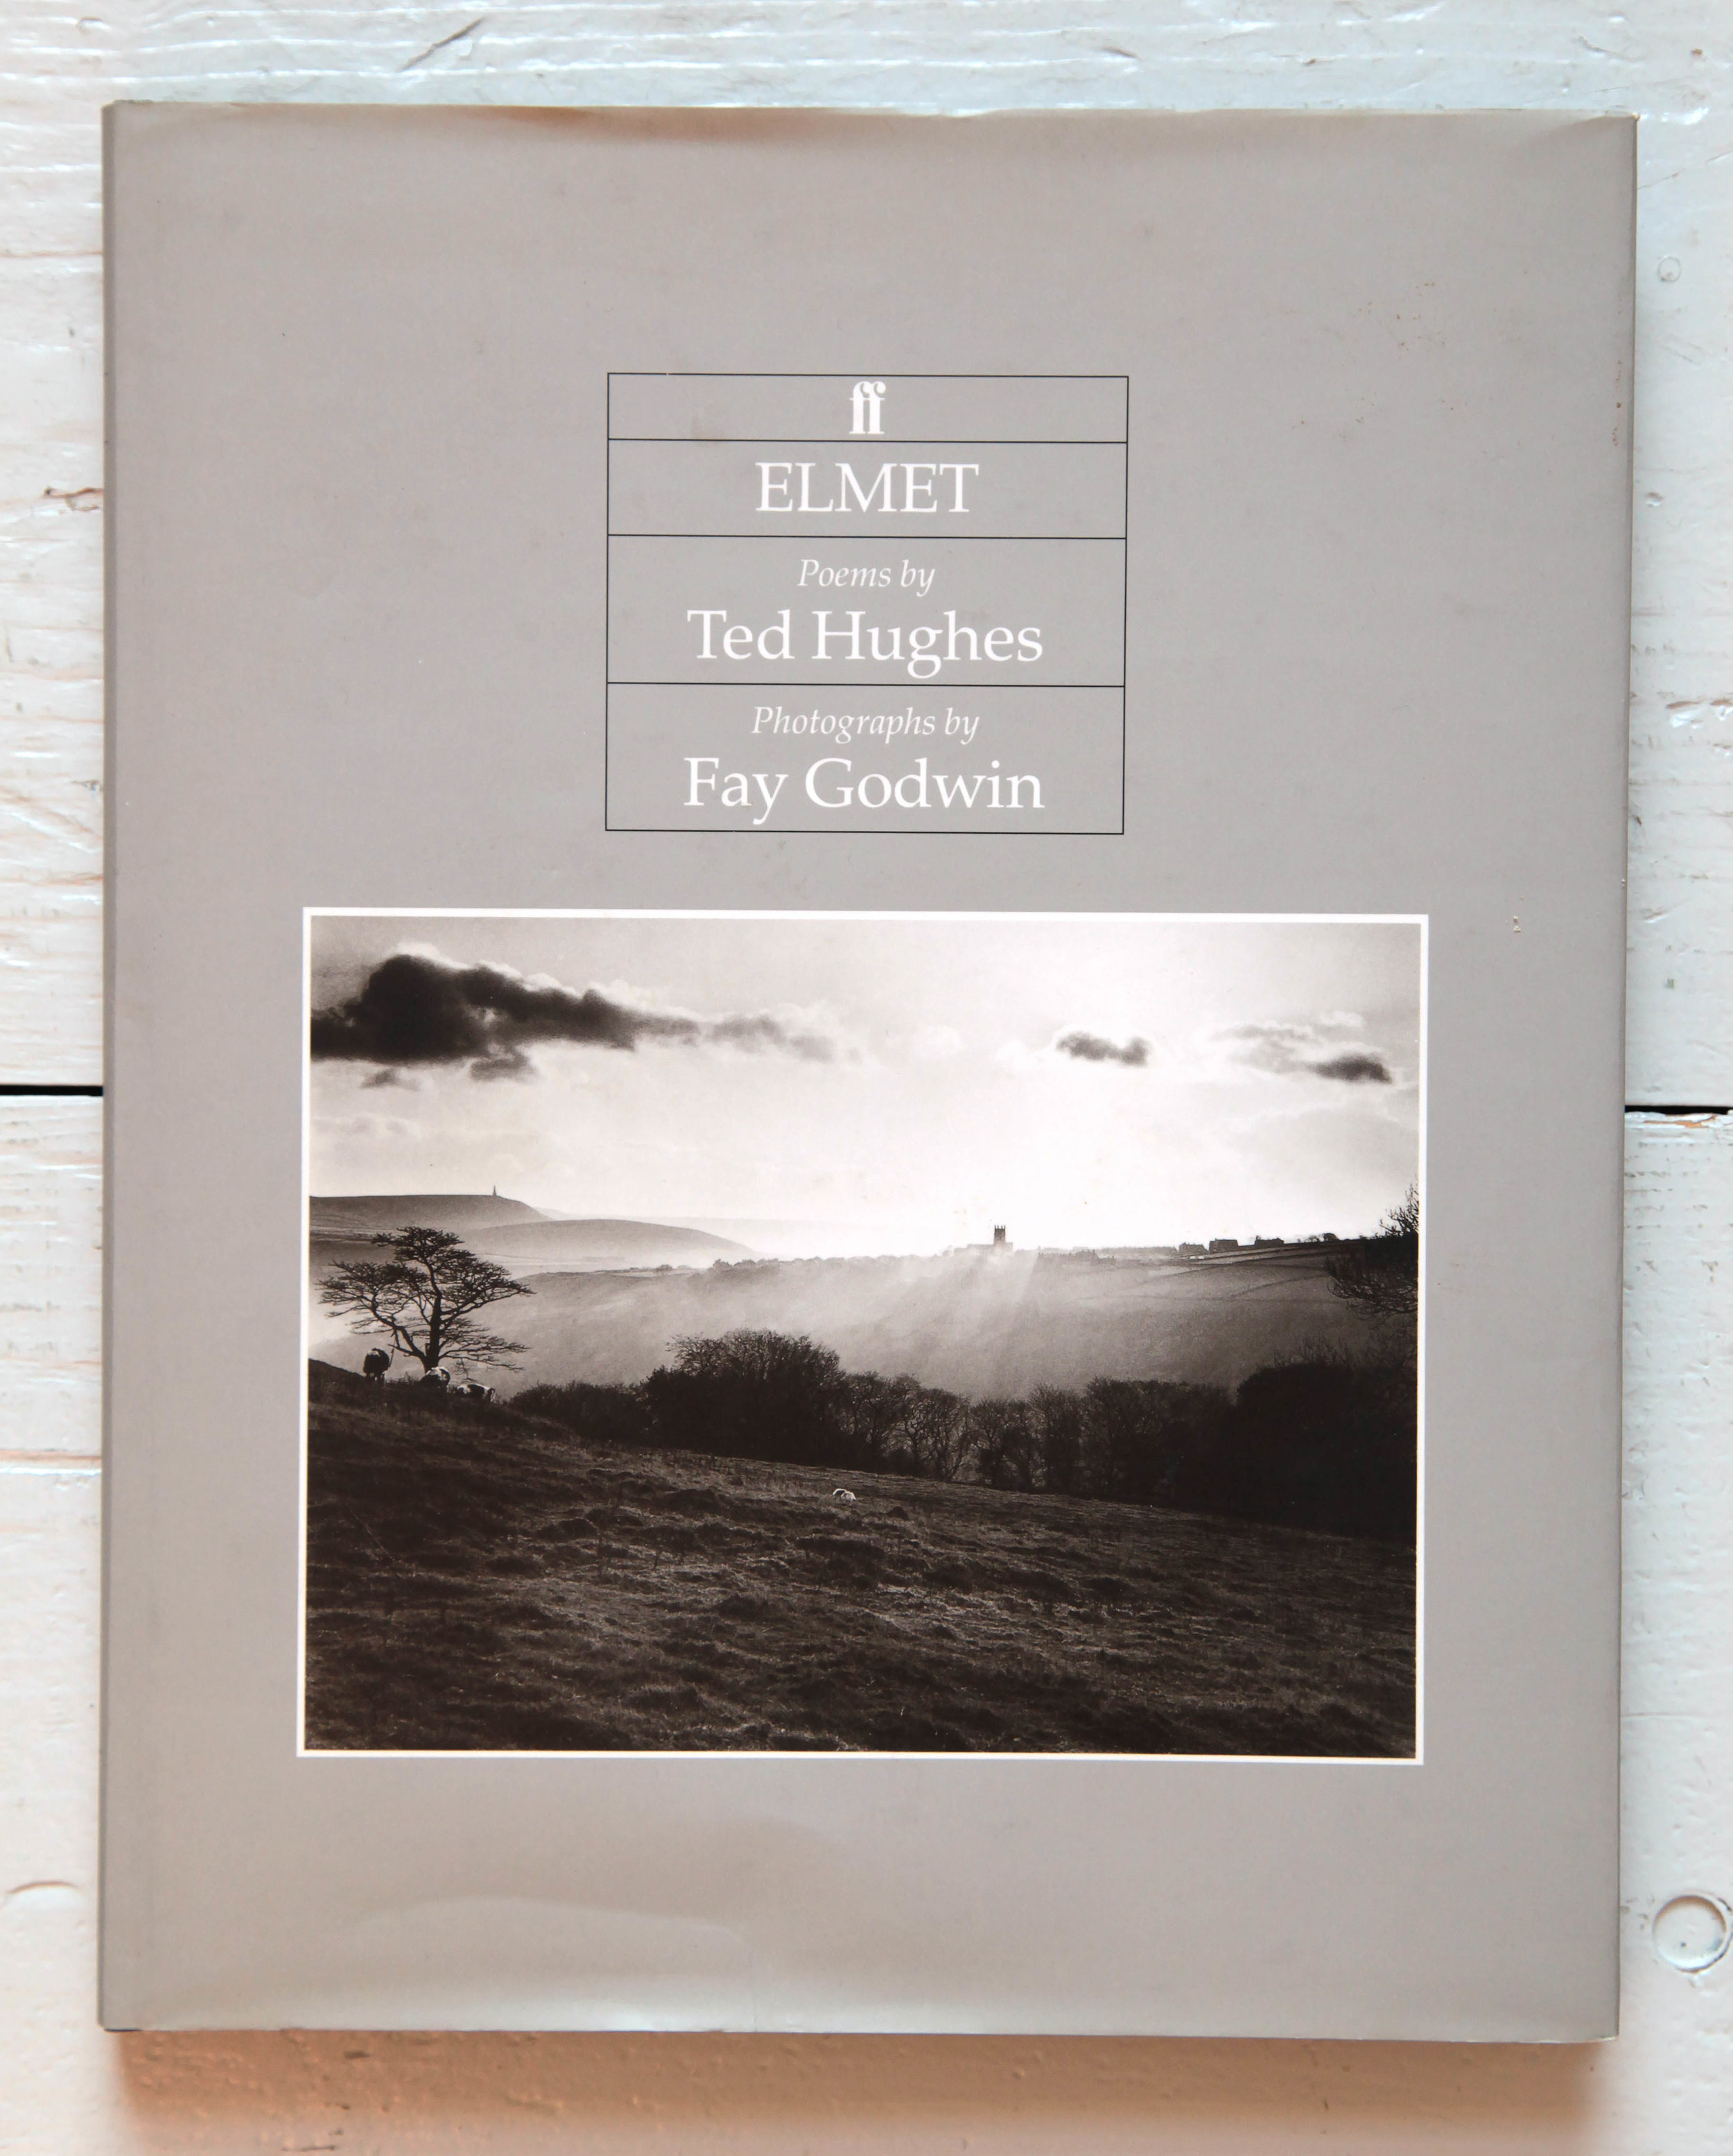 £100 Signed Copy of Fay Godwin's 'Remains of Elmet' with poems by Ted Hughes. Published by Faber and Faber, London (1994). Hardback. - First edition of this revised version - with added poems and more photographs. Fay Godwin's black and white landscapes taken in the Calder valley and the Poet Laurette's response to her exquisite images. This copy has minor scuffing to the dust jacket, but otherwise is in excellent condition, and has been kindly donated by Brett Rogers, Director Photographers' Gallery. Signed by Fay Godwin.